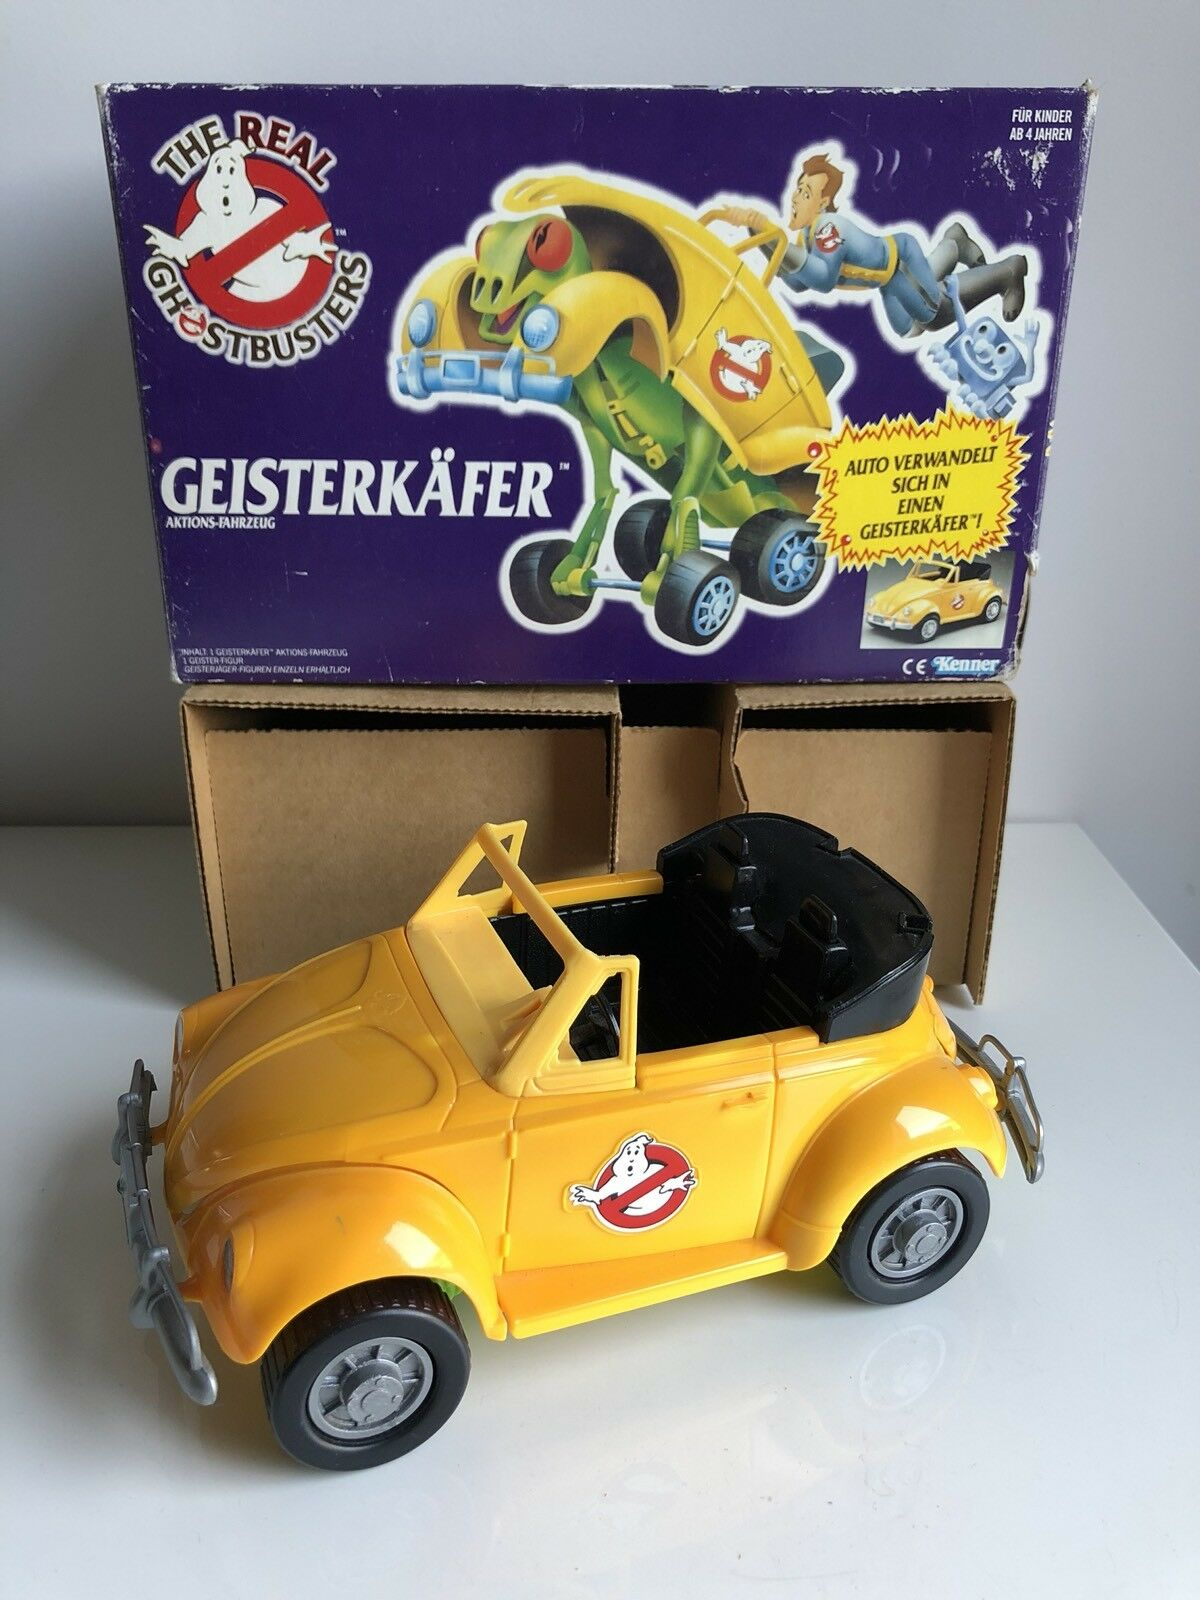 Ghostbusters Highway Haunter ghostbeetle kaifer kever With Inlay And Display Box